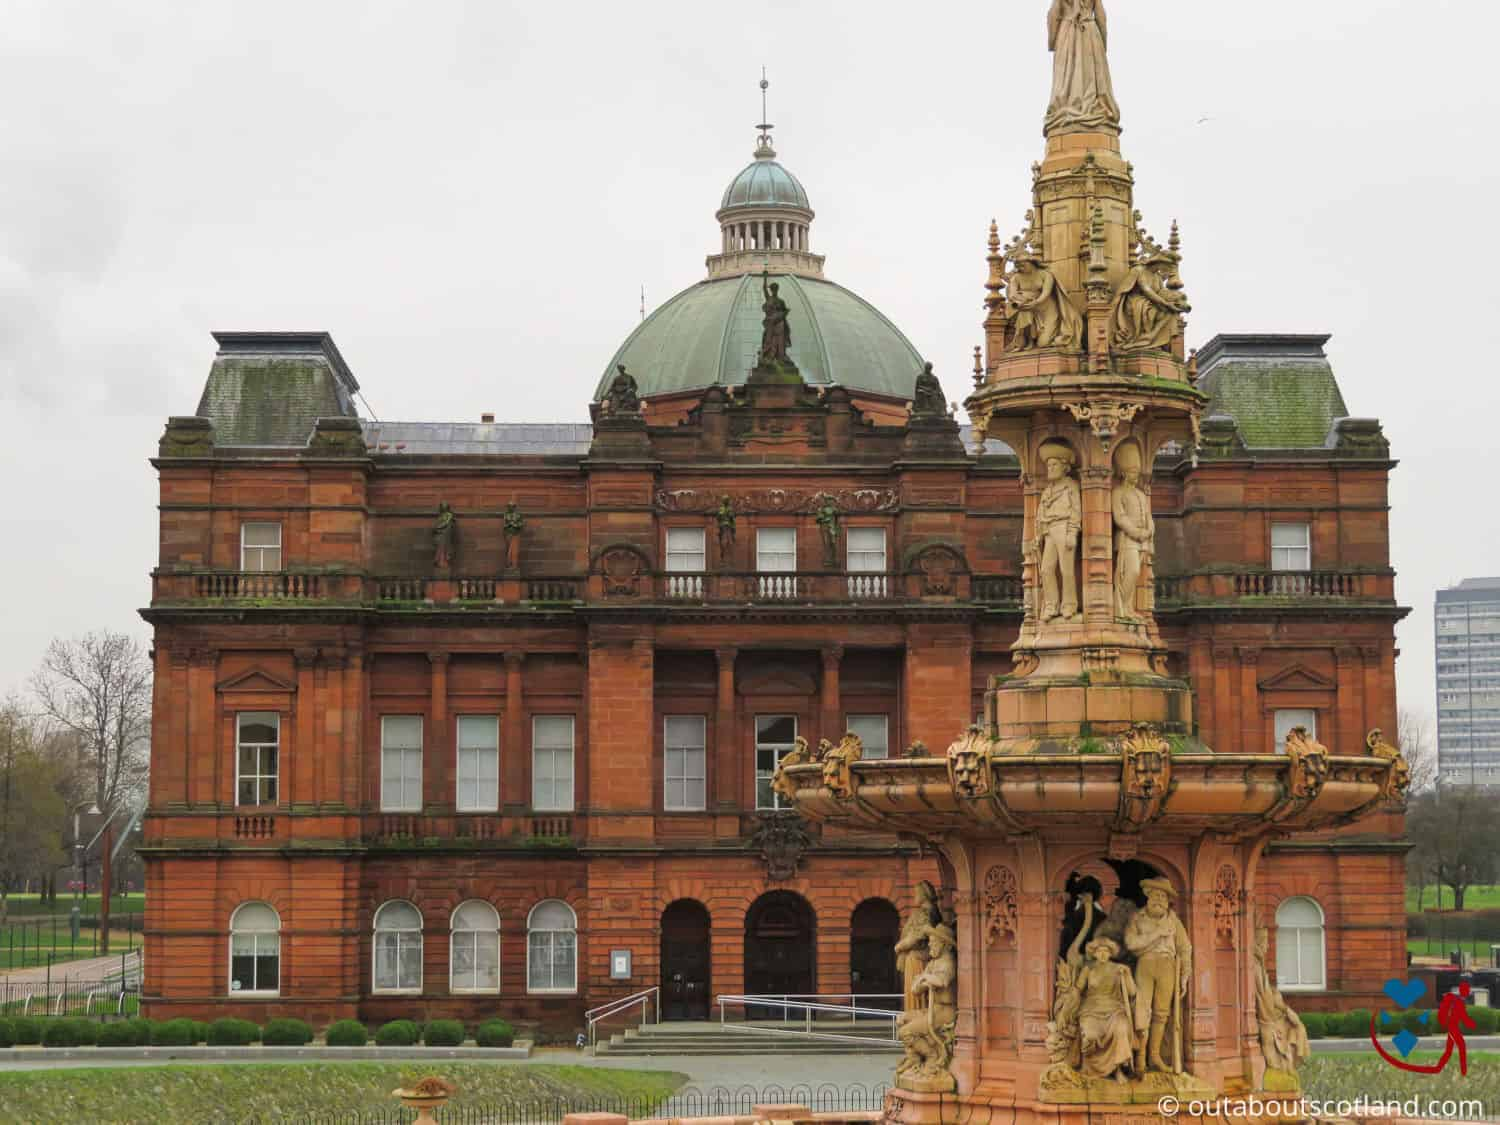 Glasgow Green and The People's Palace